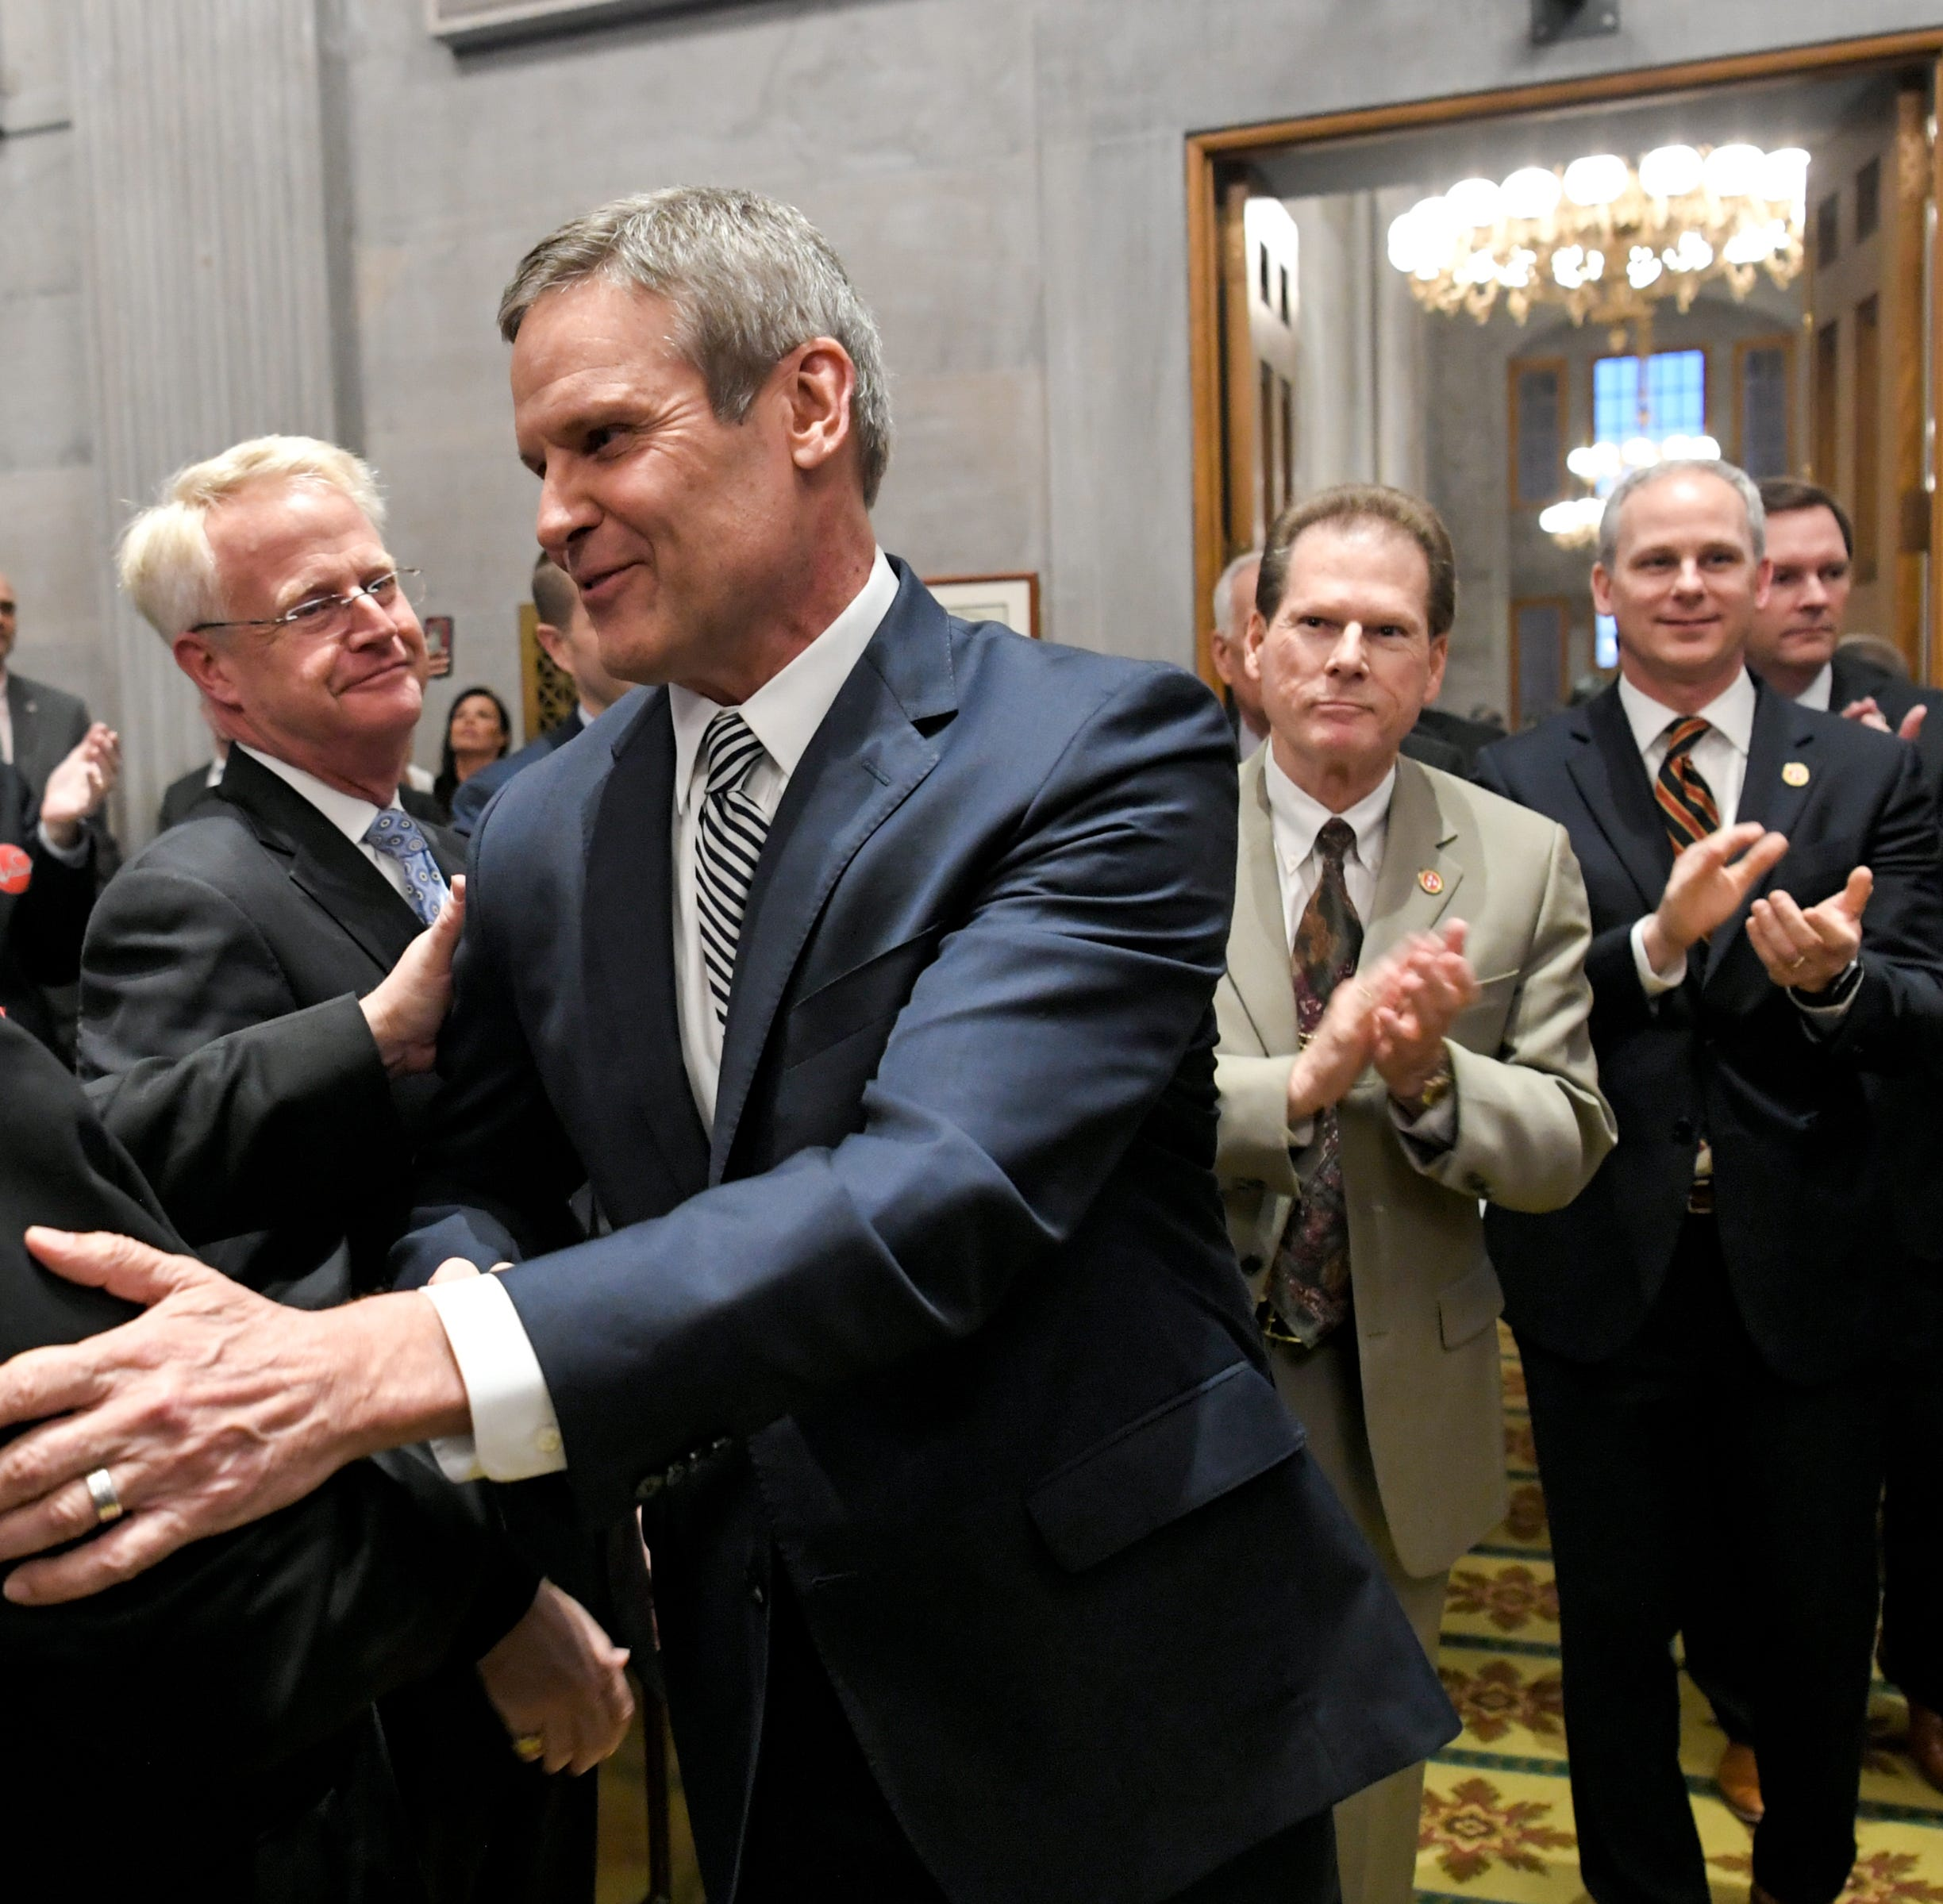 Tennessee Gov. Bill Lee in first State of the State address: 'This is a remarkable state with remarkable people'